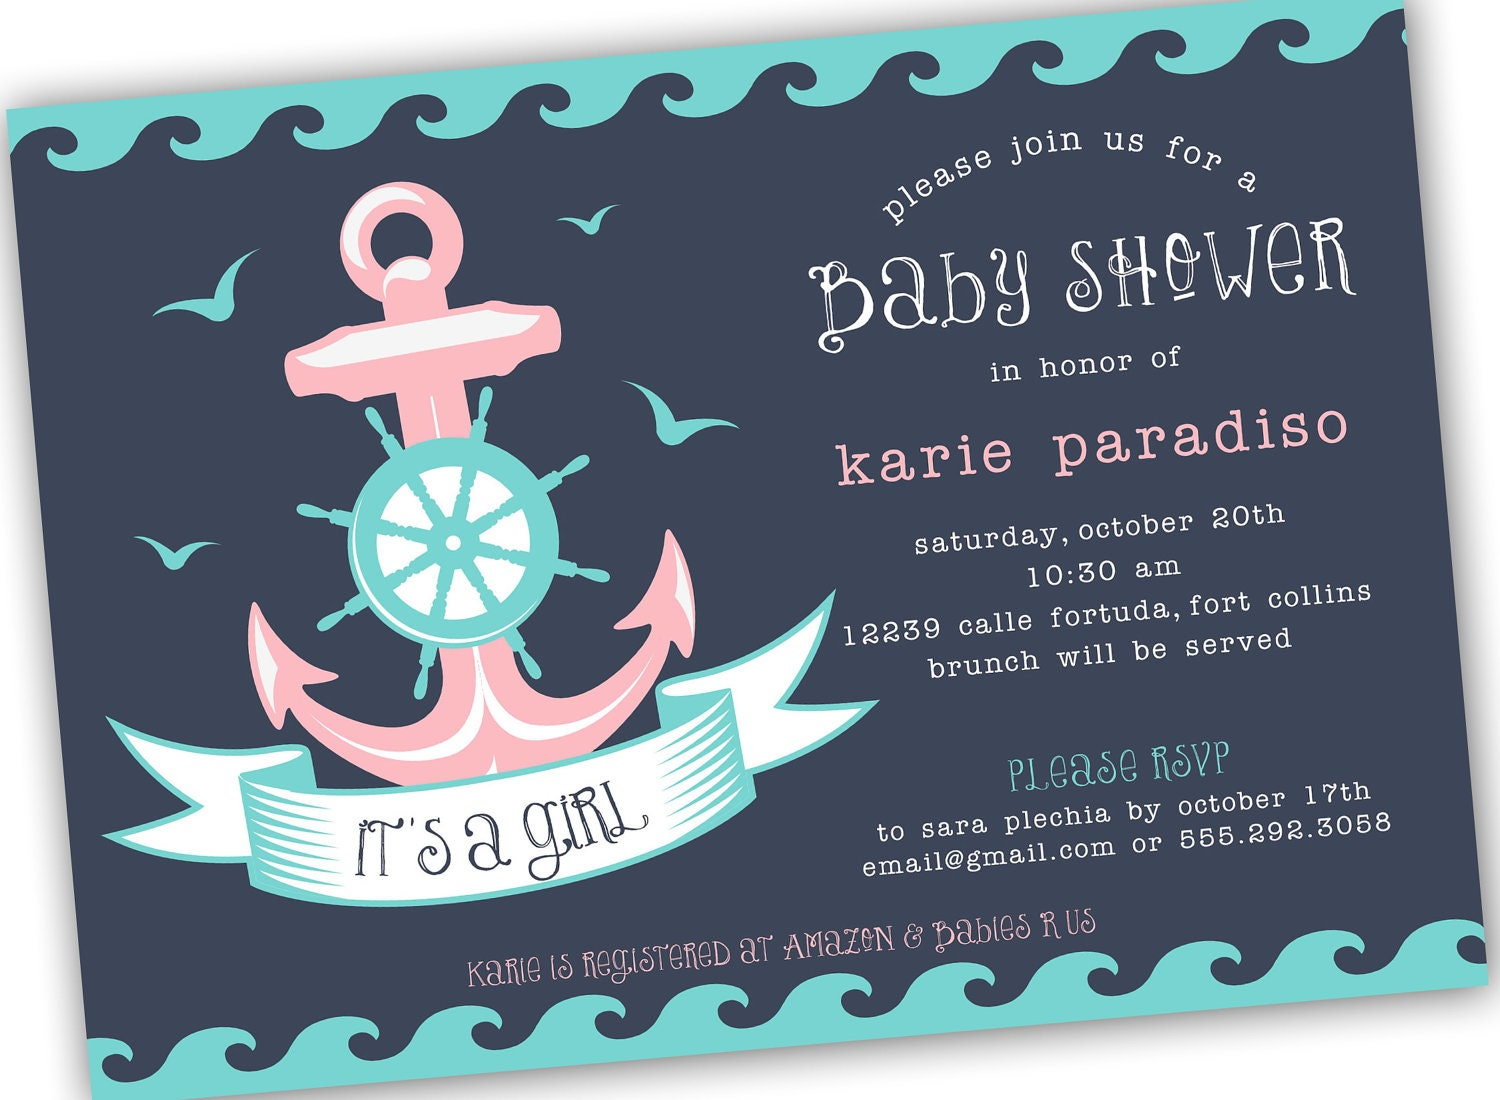 Sailor Baby Shower Invitations for good invitation layout